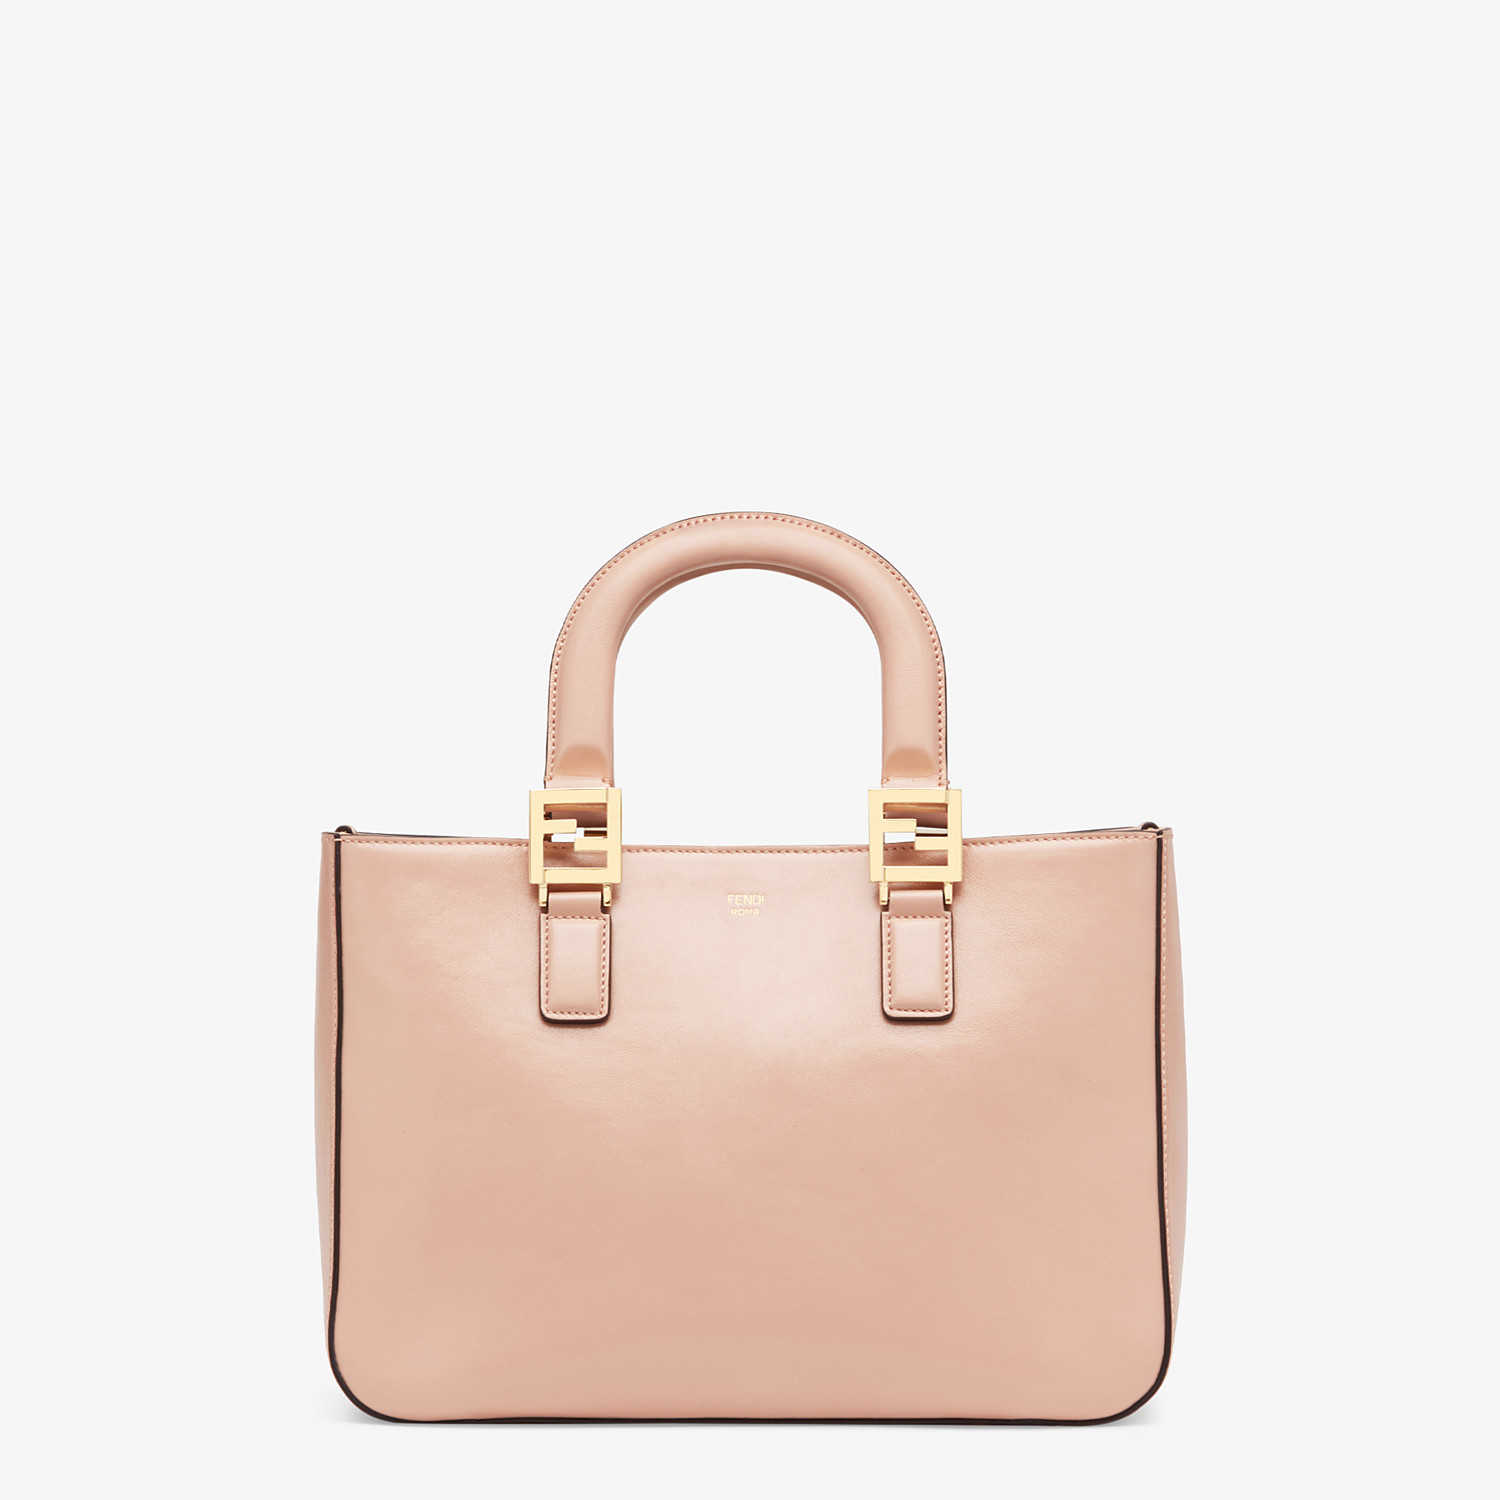 FENDI FF TOTE SMALL - Tasche aus Leder in Rosa - view 1 detail